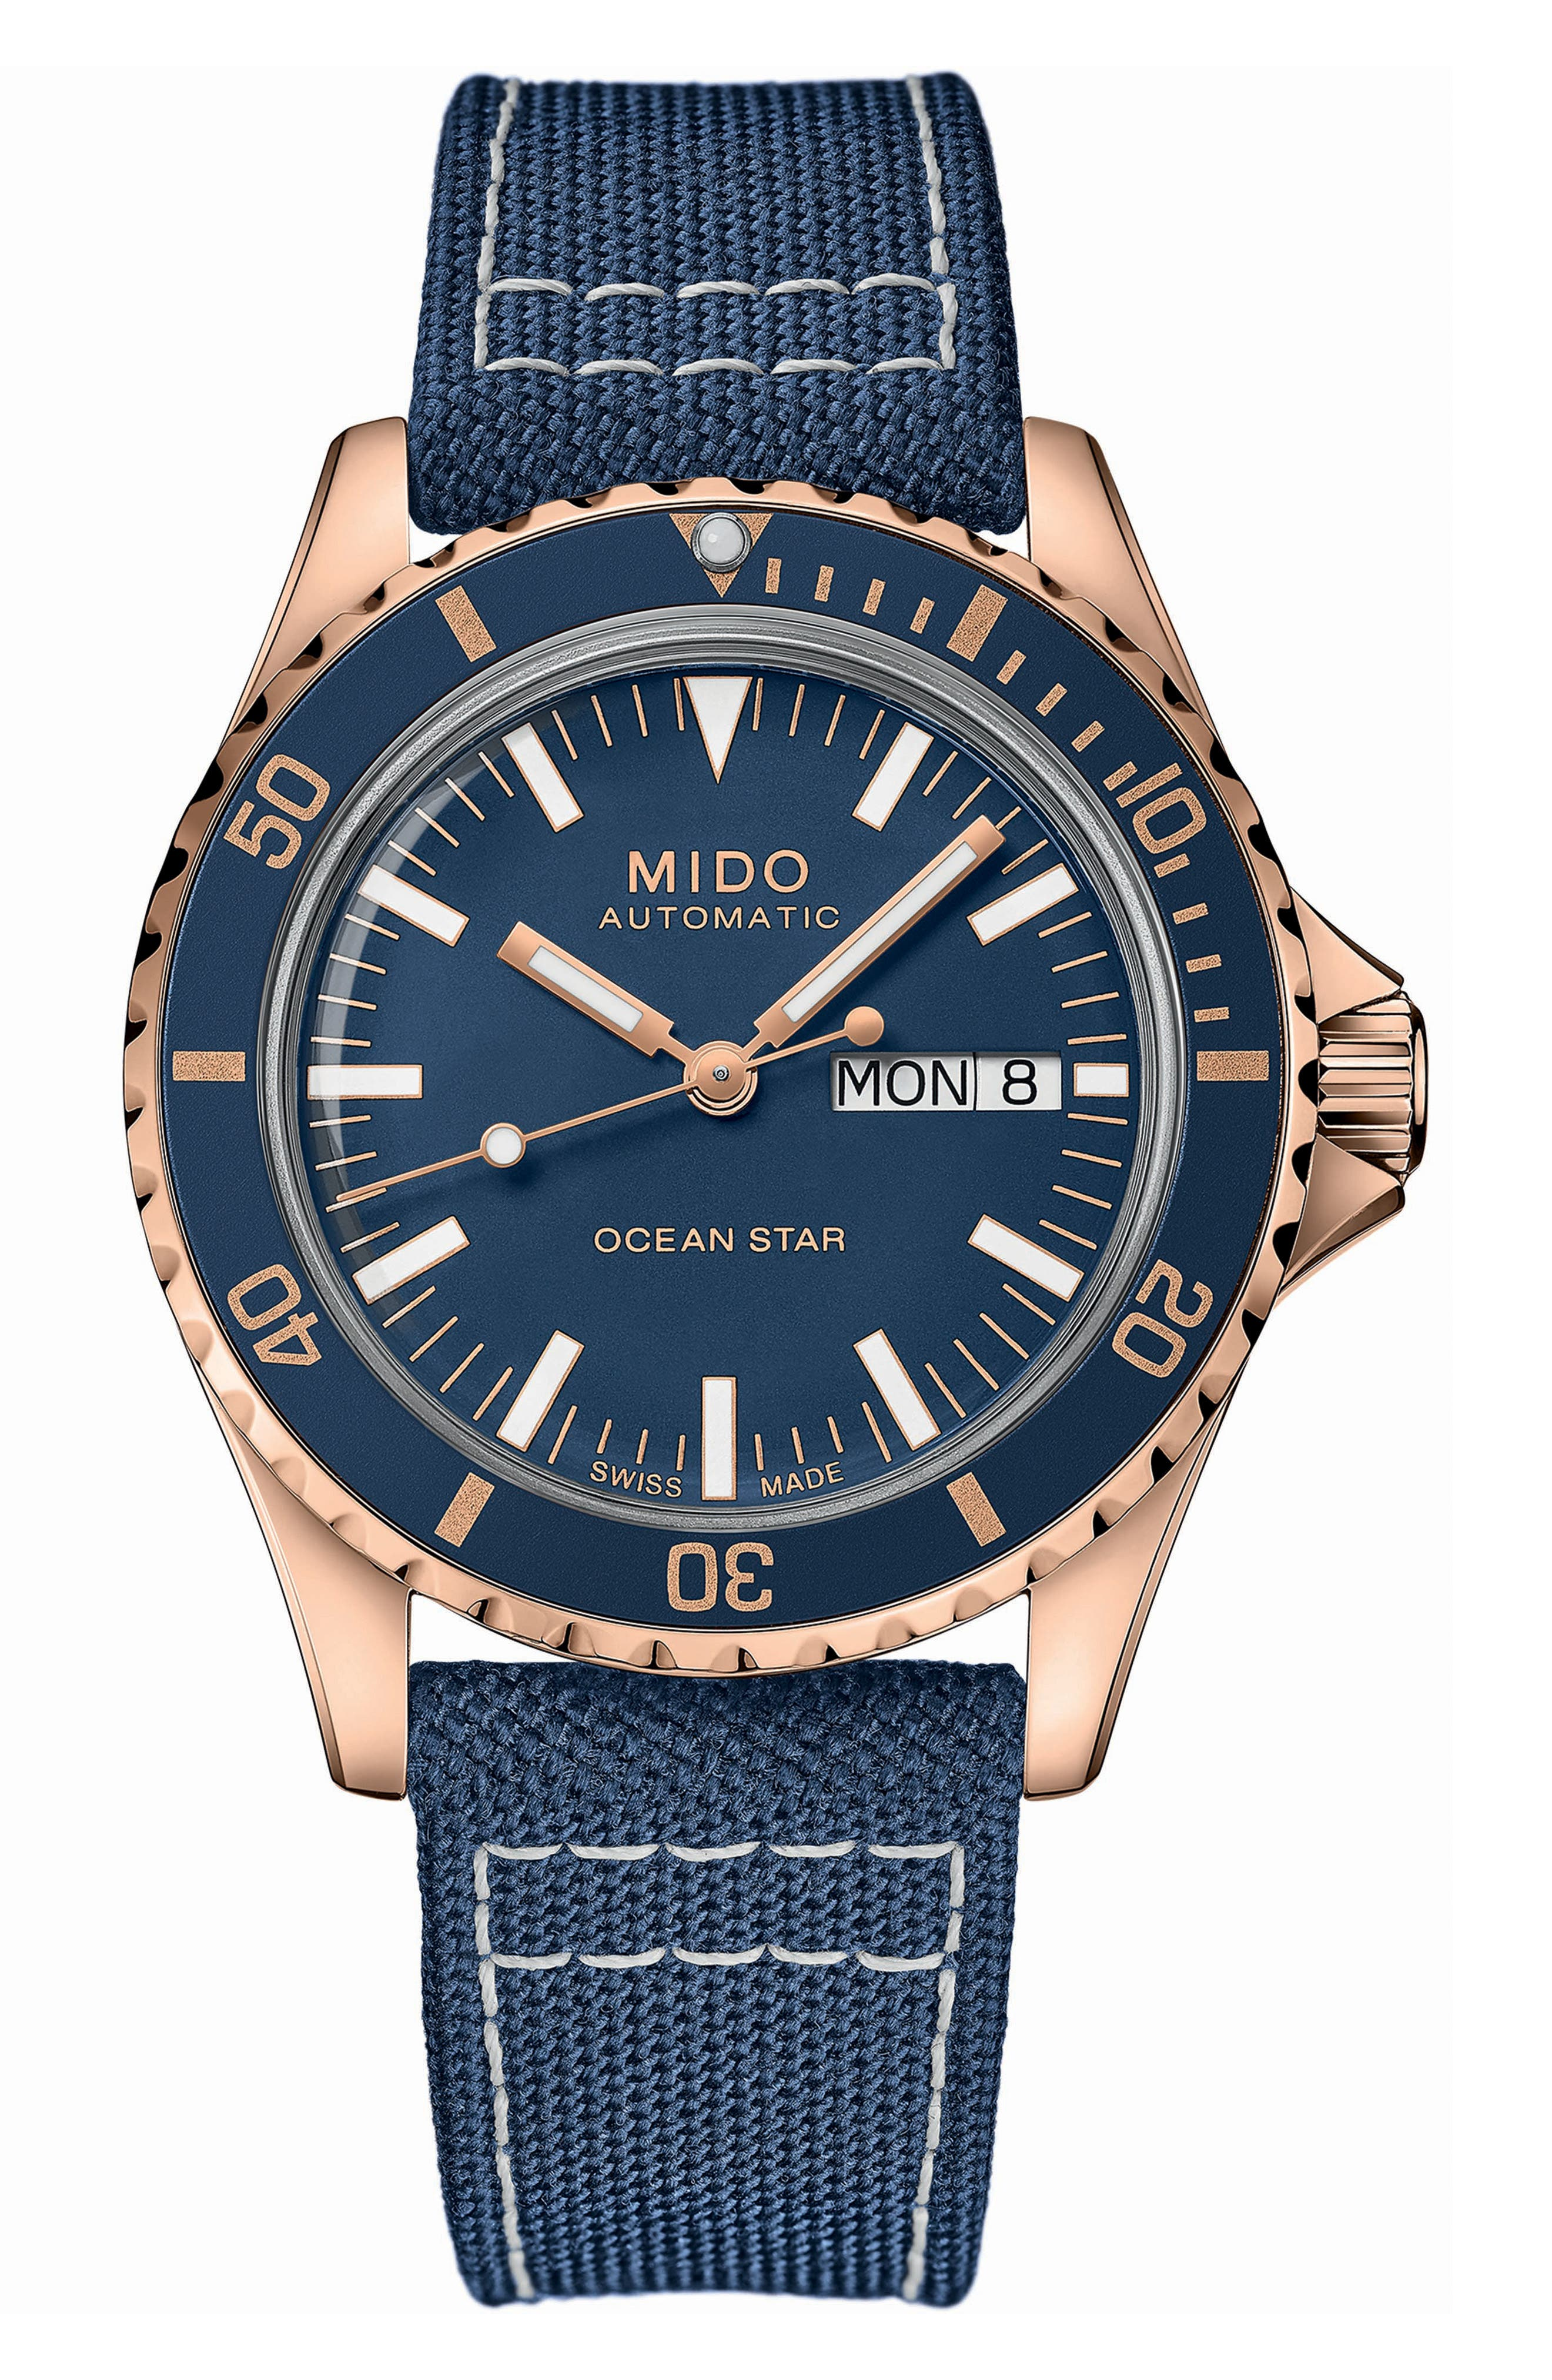 Ocean Star Tribute Automatic Textile Strap Watch